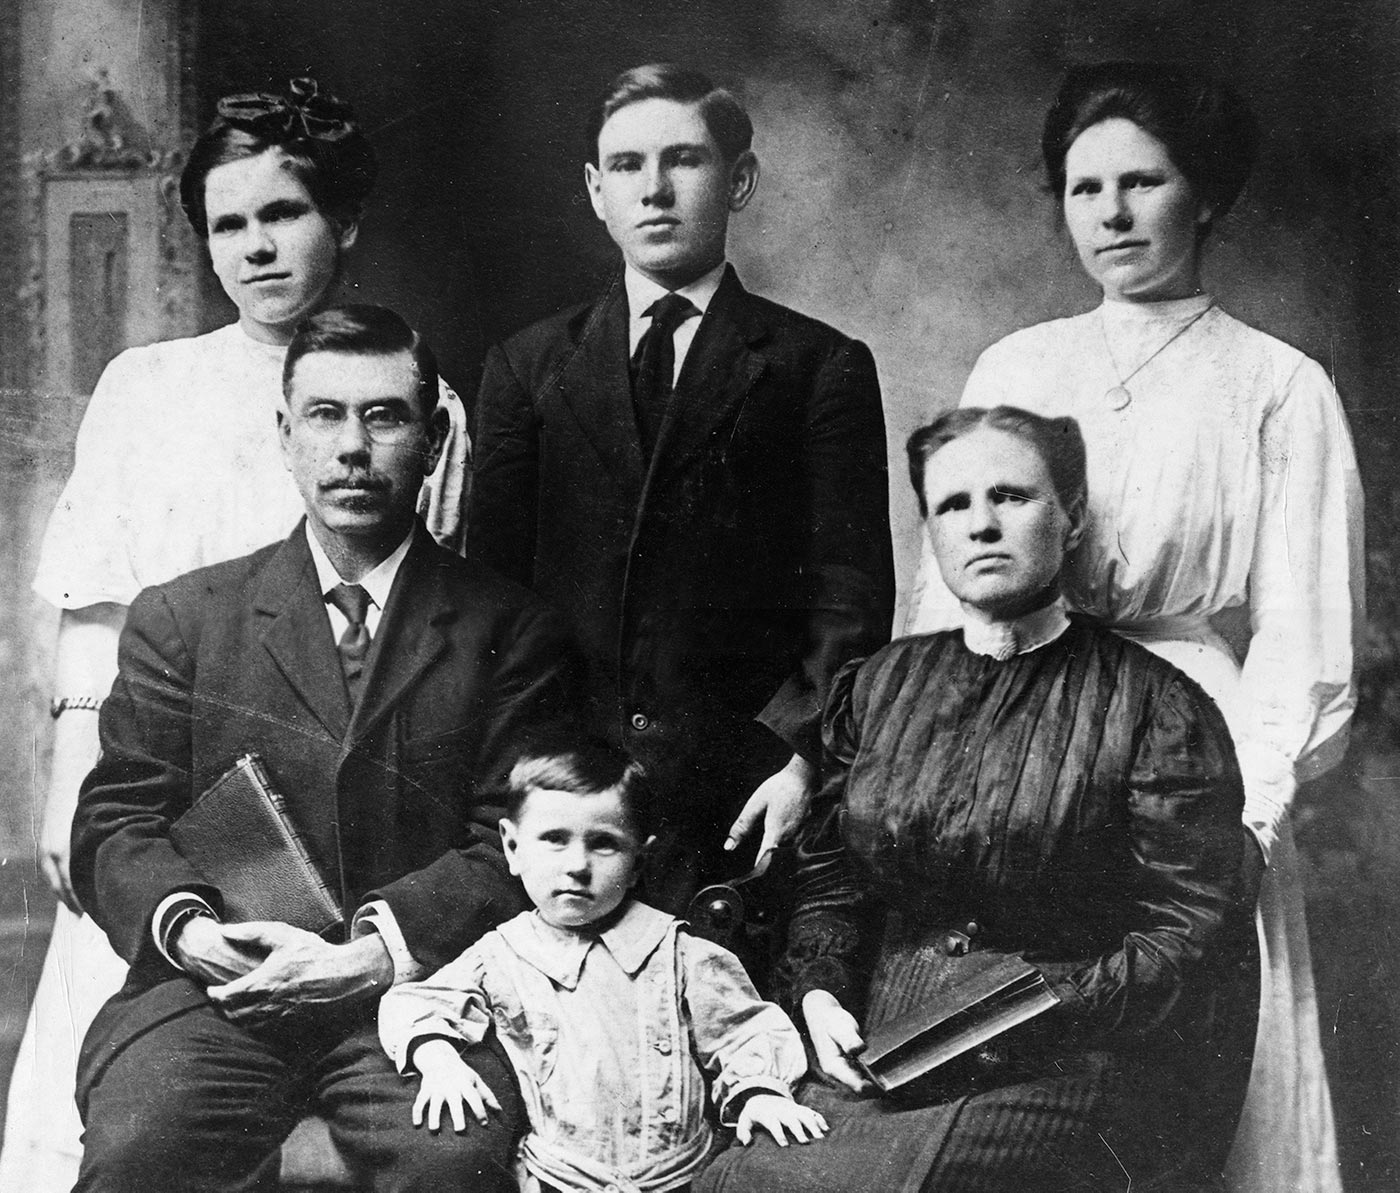 A. J. Tomlinson family about 1910